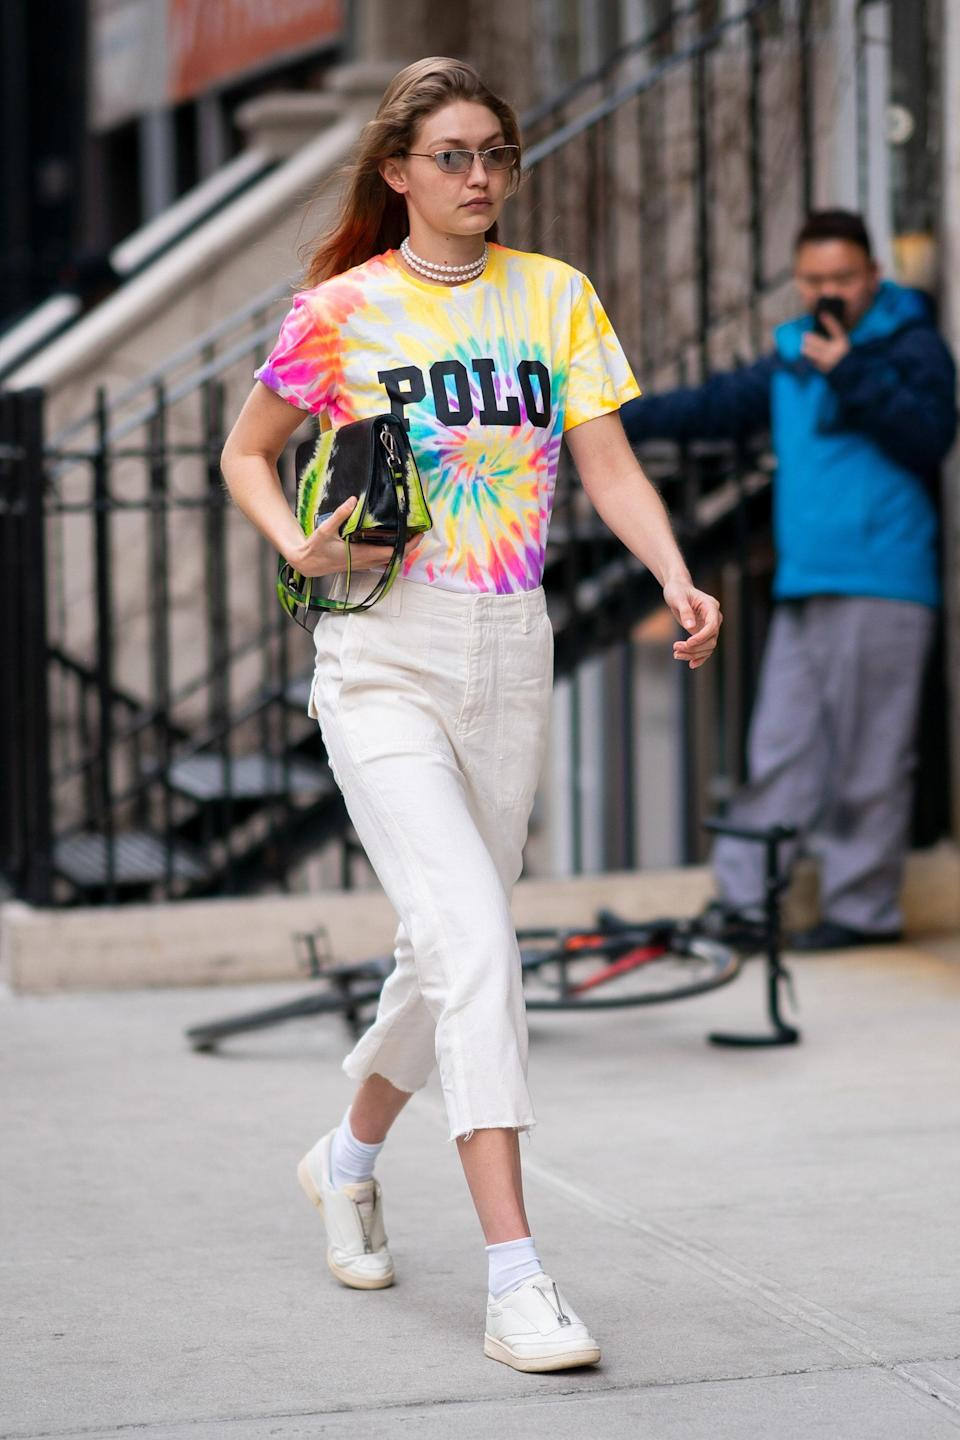 Tie-dye take two! Gigi looks like the summer camp counselor of our dreams, pairing a rainbow-hued t-shirt with cropped khakis and a green and black tie-dyed purse. The only thing missing is a stack of friendship bracelets!